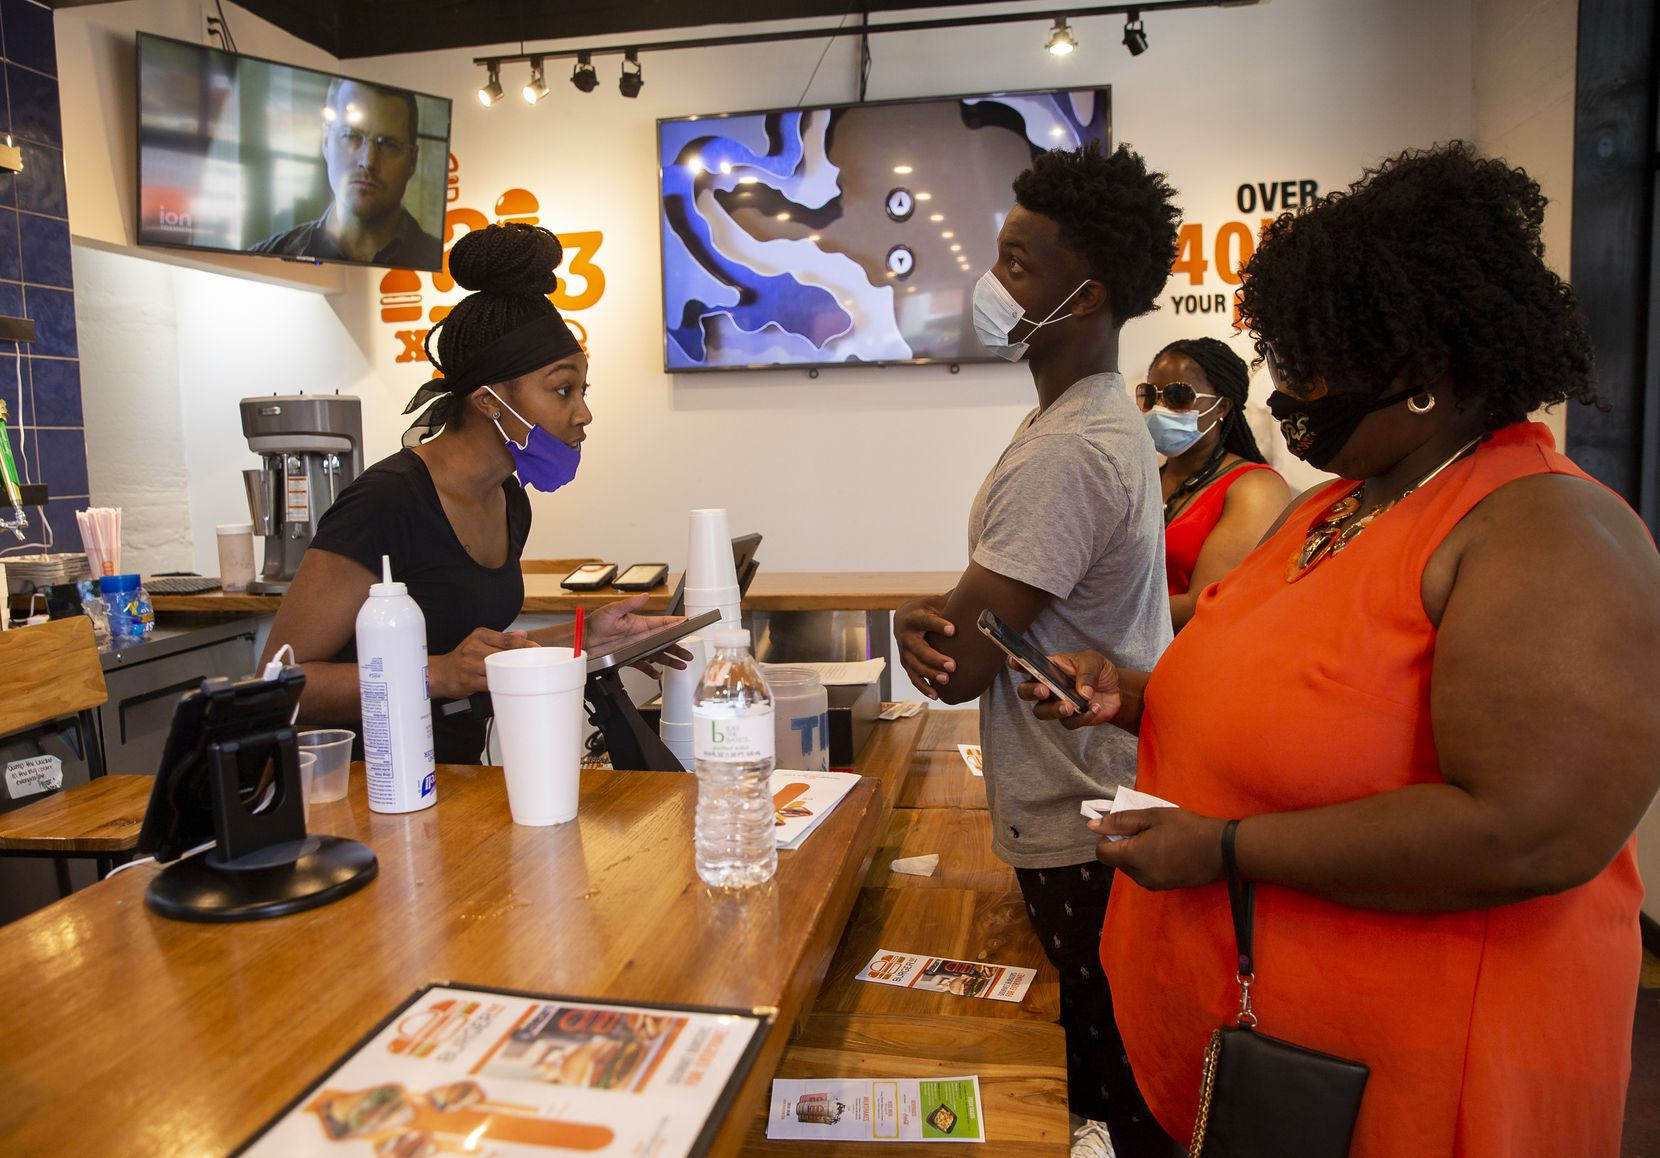 Mary Jones (left) takes orders at BurgerIM on Sunday, May 31, 2020 in Dallas. Many in the community have shown up to support the West End restaurant after it was damaged by protesters Friday night. (Juan Figueroa/ The Dallas Morning News)